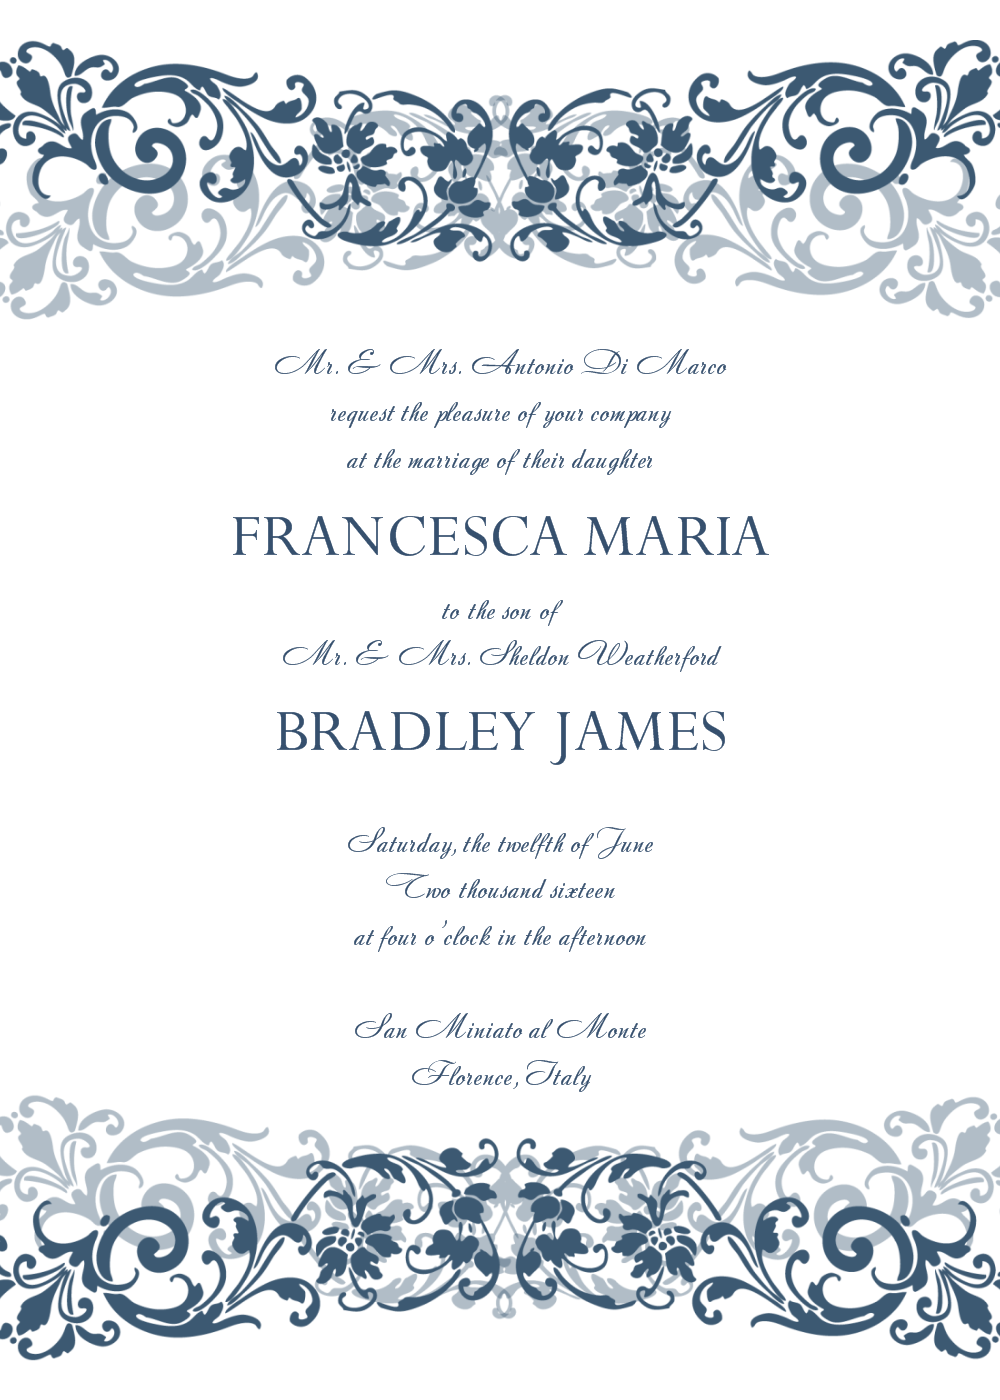 30 free wedding invitations templates - Wedding Invitations Free